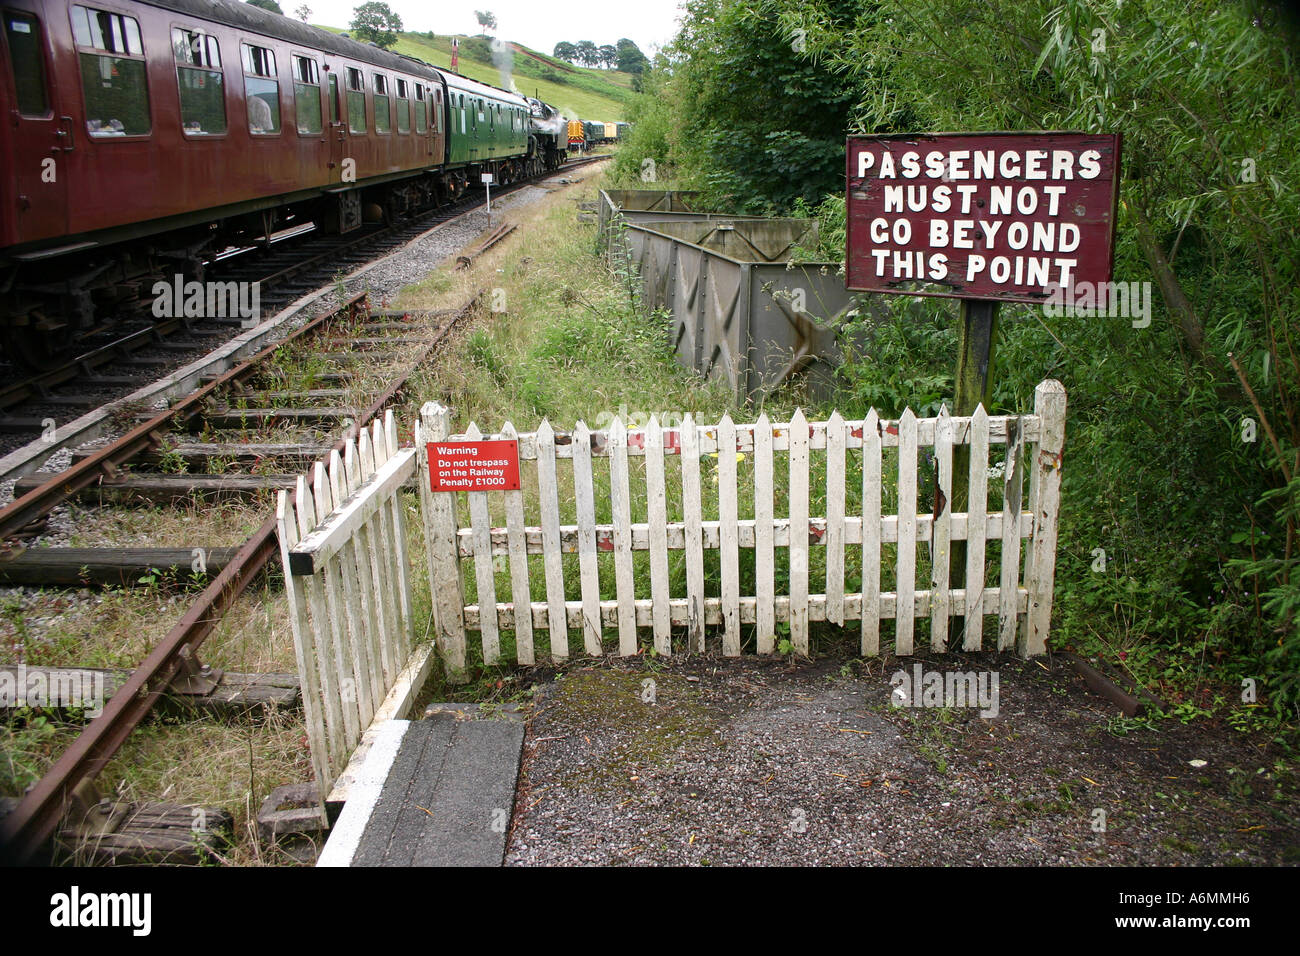 Passengers must not go beyond this point sign on steam railway at Cheddleton station, Staffordshire - Stock Image